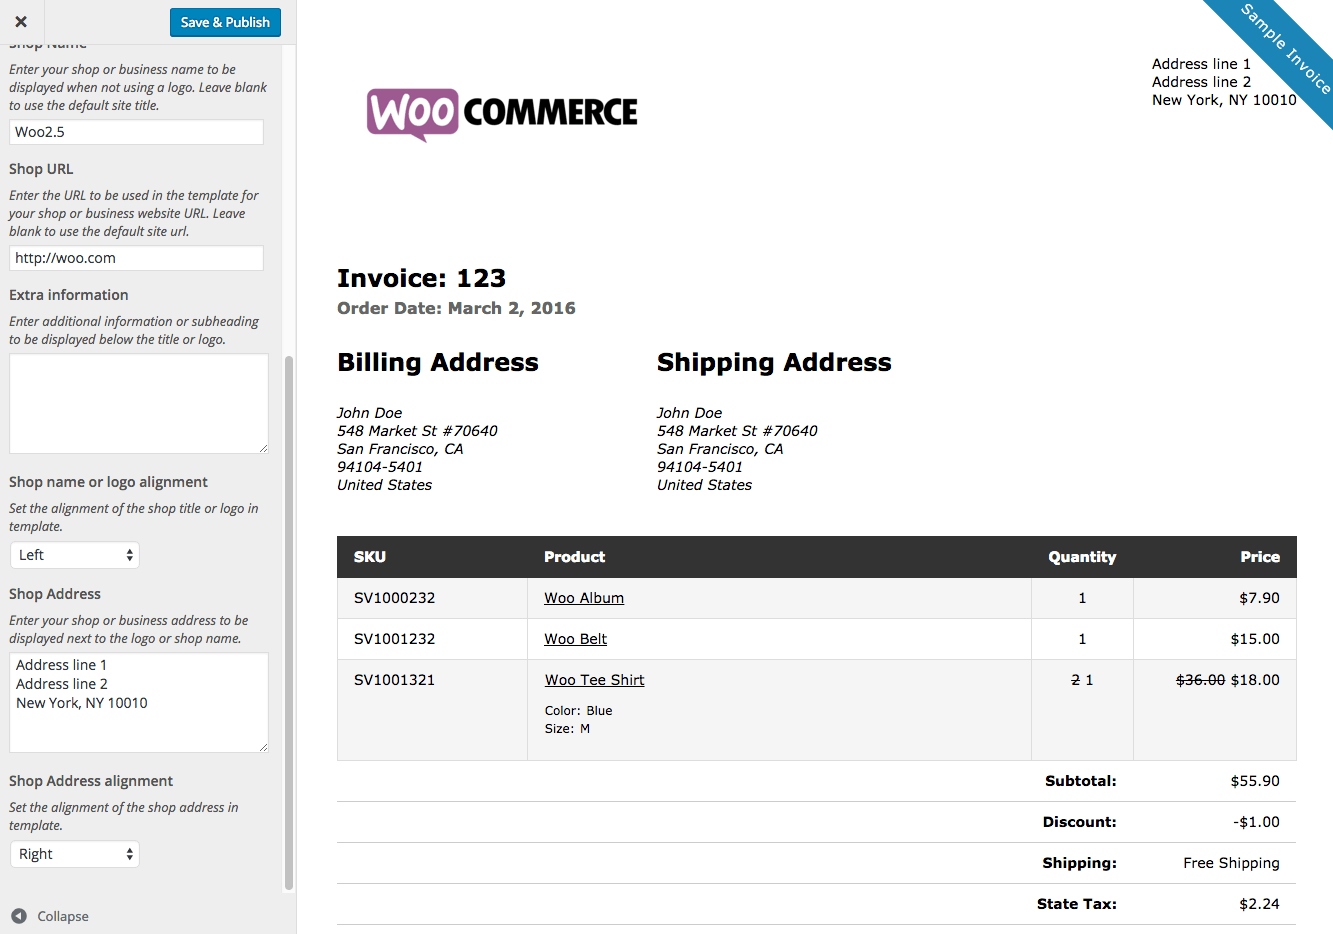 Modaoxus  Remarkable Print Invoices Amp Packing Lists  Woocommerce With Marvelous Woocommerce Print Invoices  Packing Lists Customizer With Beautiful Acura Rdx Invoice Also Instant Invoice In Addition Cloud Based Invoicing And Dealer Invoice Price Definition As Well As Time Tracking Invoicing Additionally Invoice Software Review From Woocommercecom With Modaoxus  Marvelous Print Invoices Amp Packing Lists  Woocommerce With Beautiful Woocommerce Print Invoices  Packing Lists Customizer And Remarkable Acura Rdx Invoice Also Instant Invoice In Addition Cloud Based Invoicing From Woocommercecom